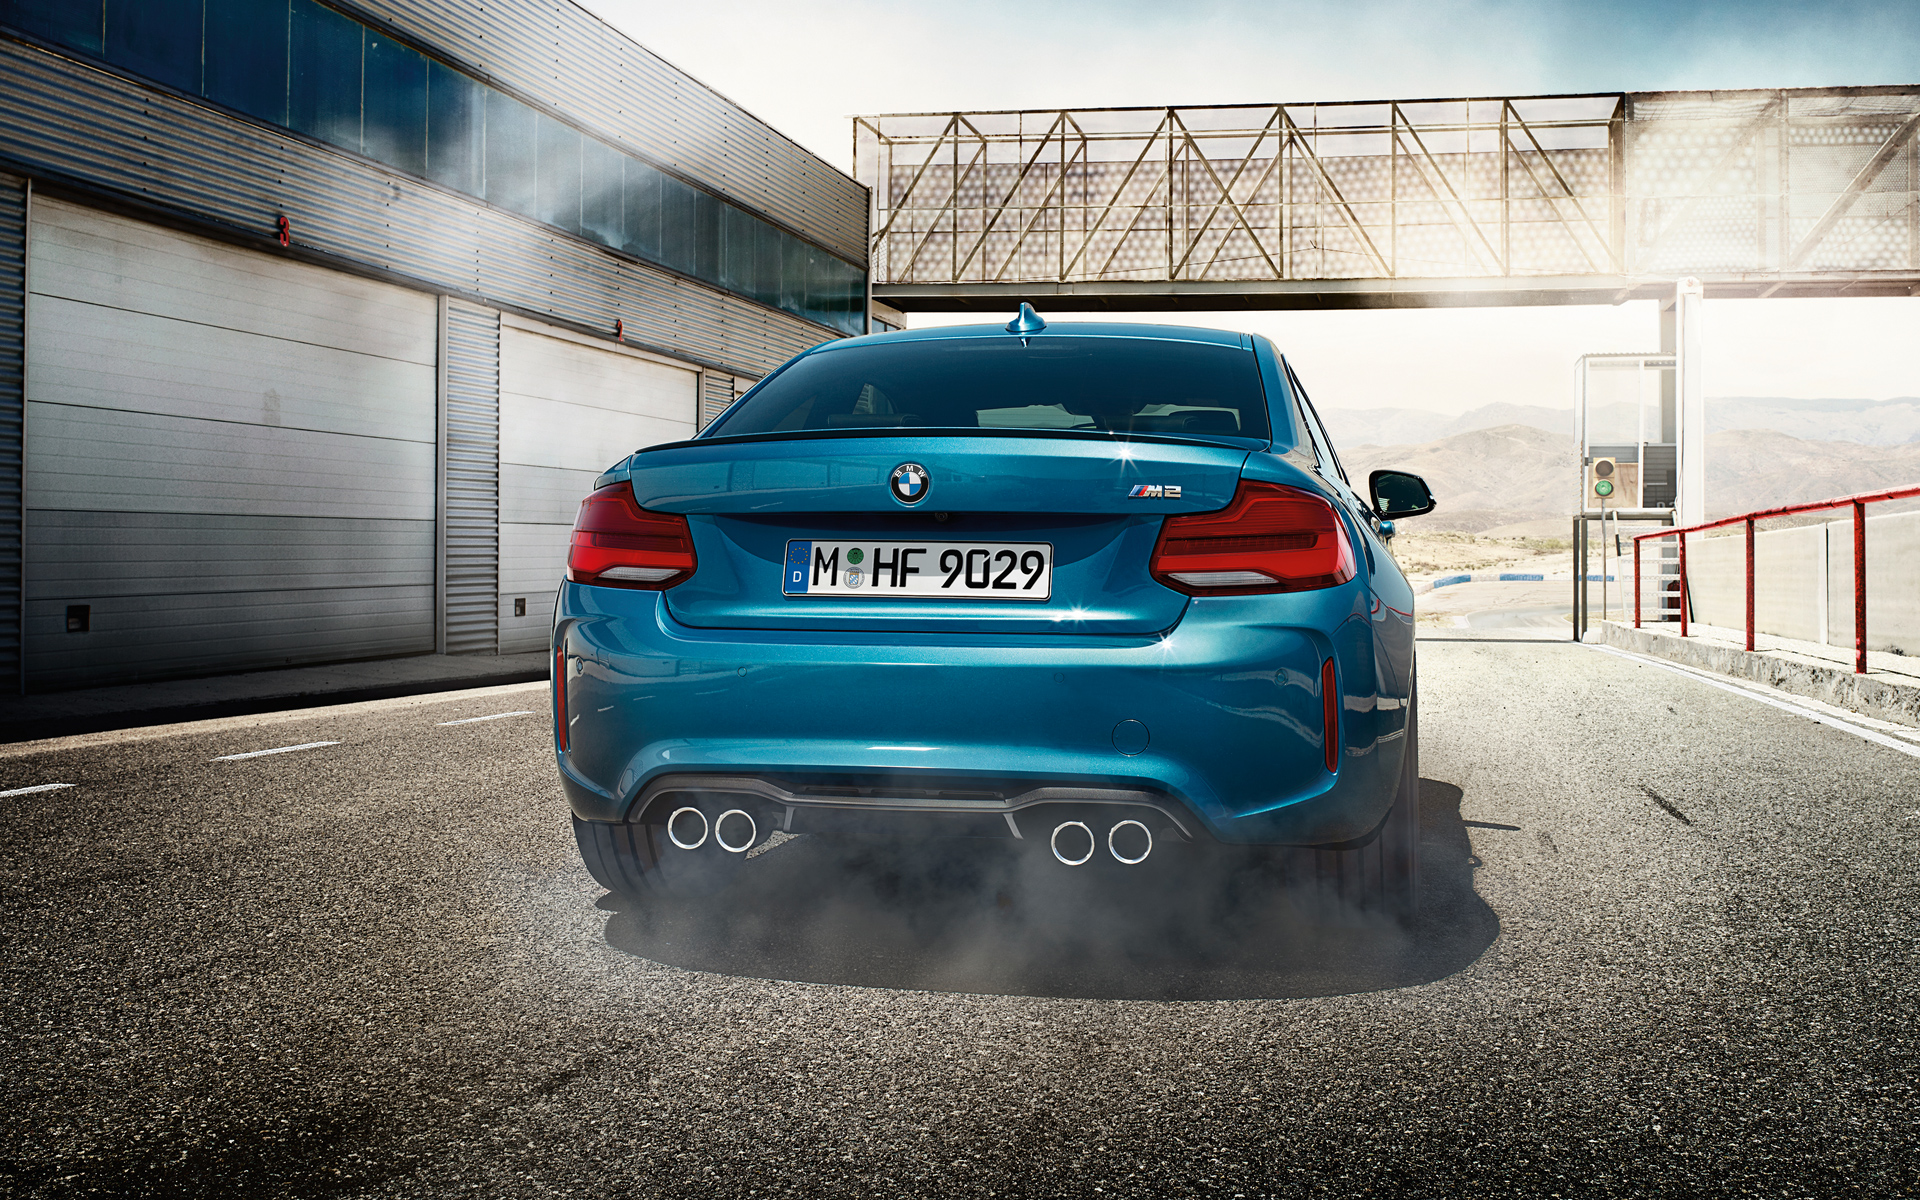 Rear Side Exterior Shot of a 2015 M2 Coupe